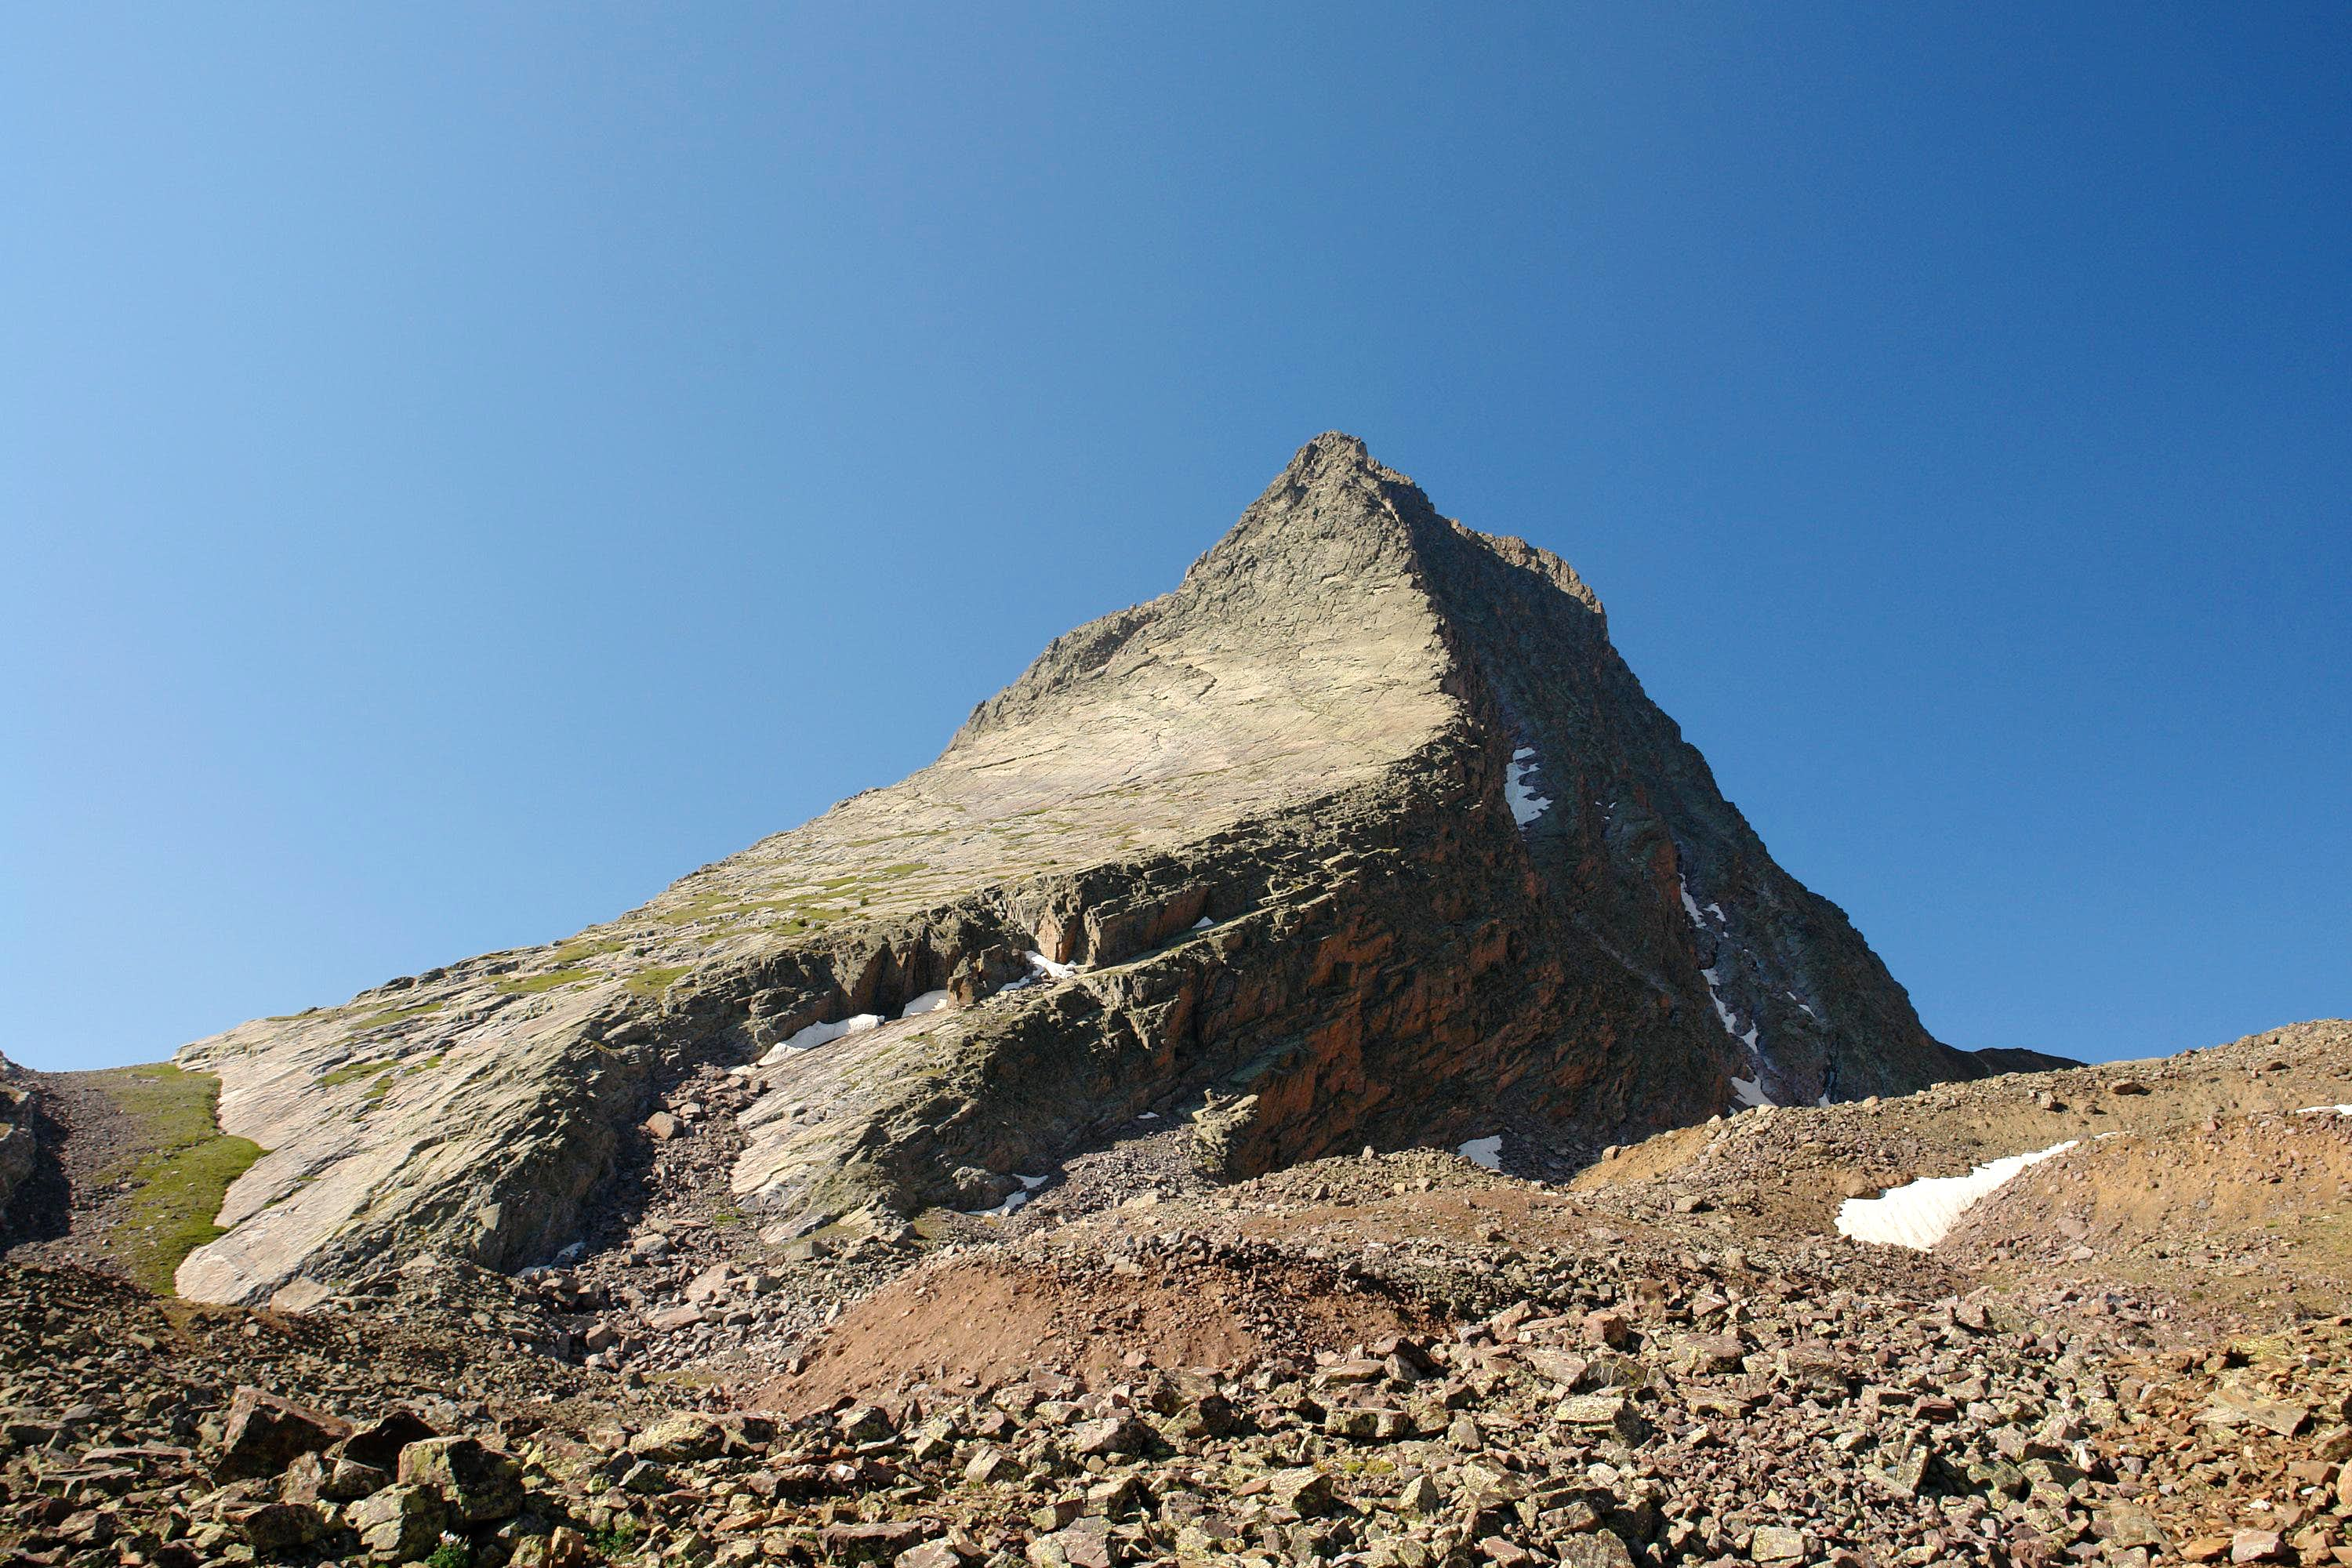 Vestal Peak via Wham Ridge